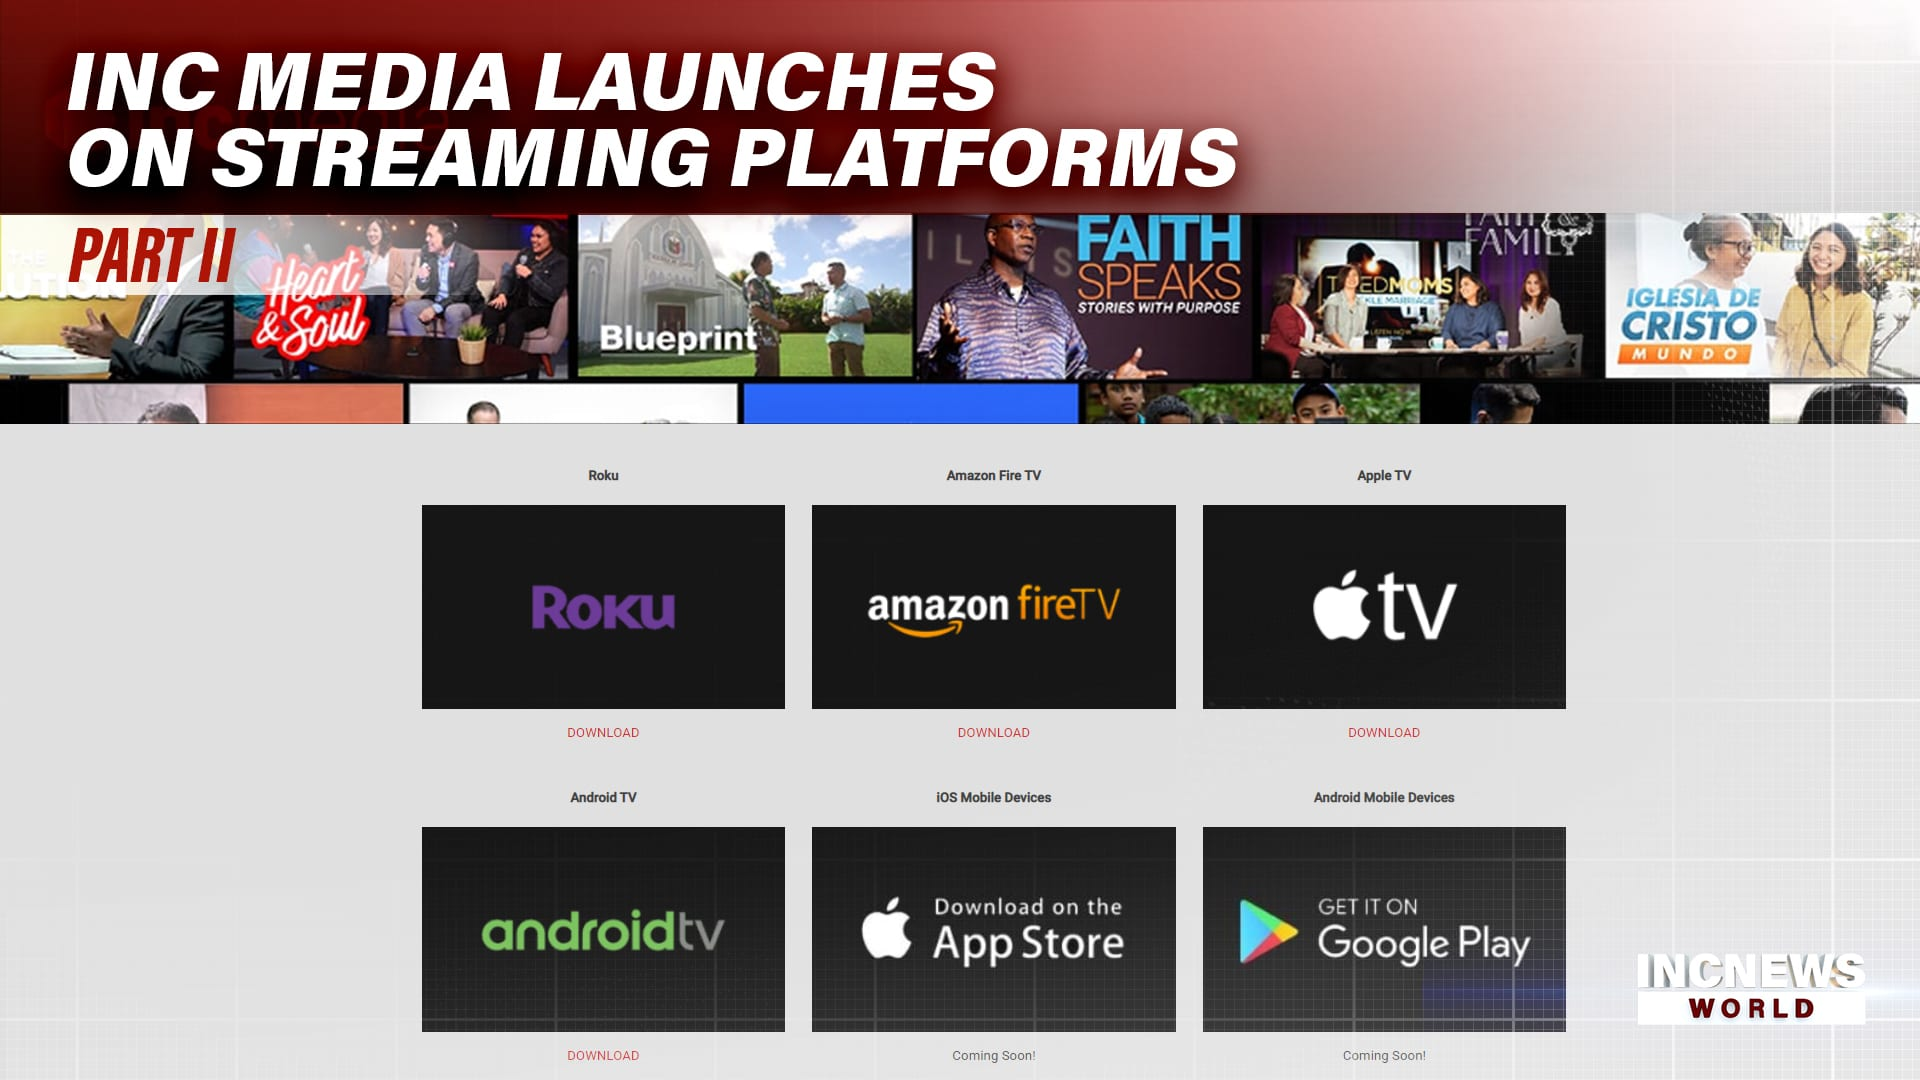 INC Media Launches on Streaming Platforms